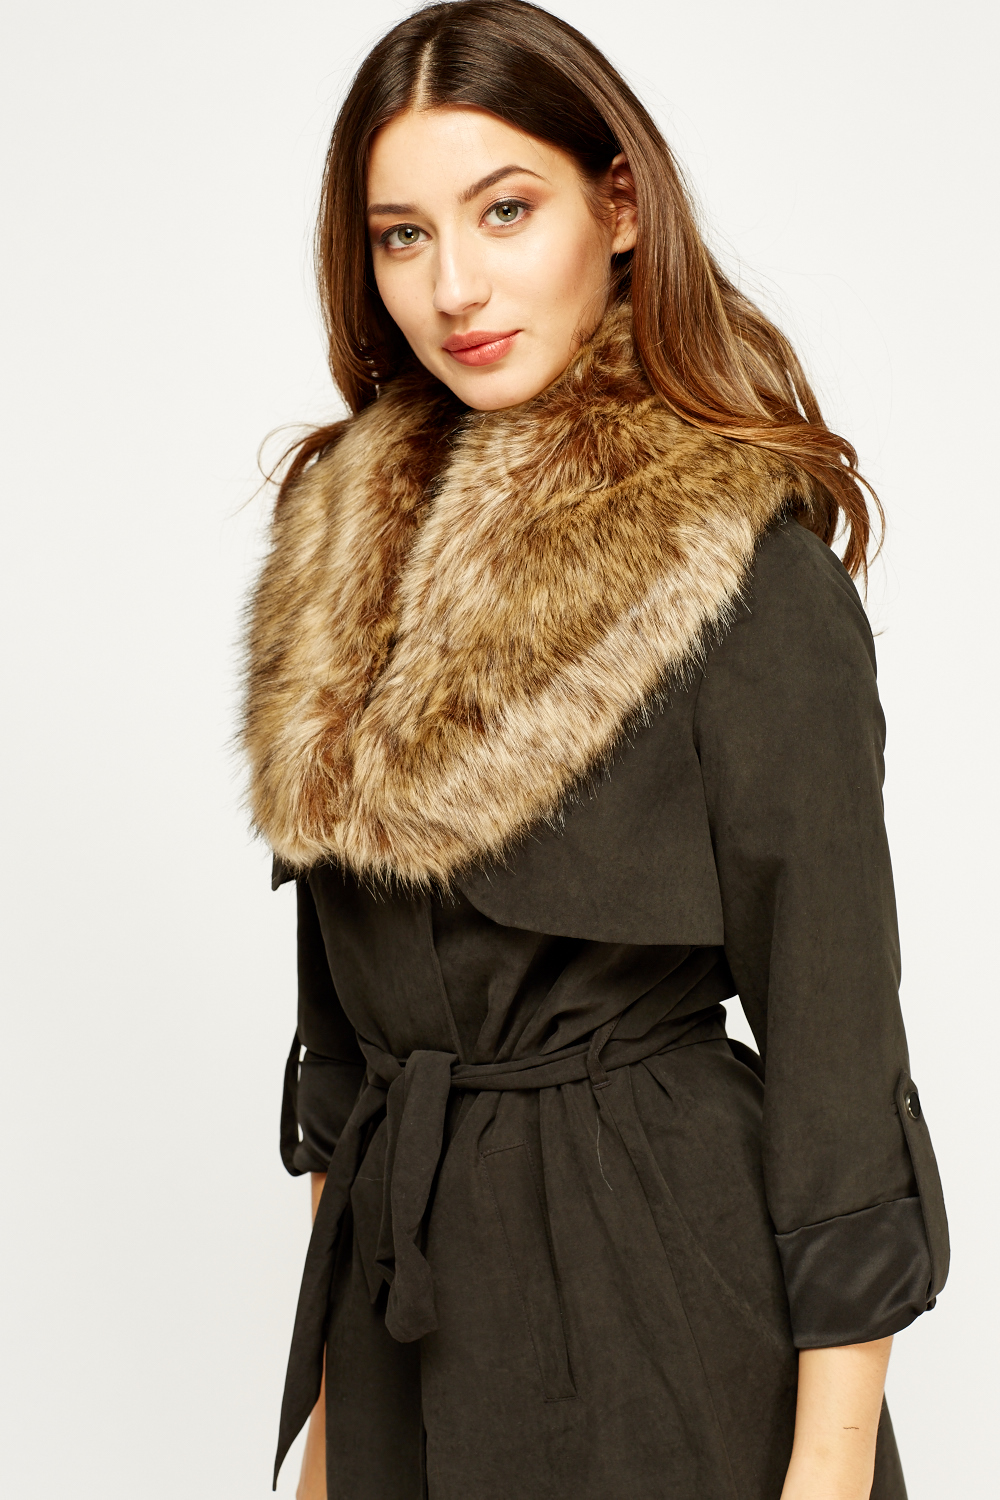 You searched for: faux fur collar! Etsy is the home to thousands of handmade, vintage, and one-of-a-kind products and gifts related to your search. No matter what you're looking for or where you are in the world, our global marketplace of sellers can help you find unique and affordable options. Let's get started!